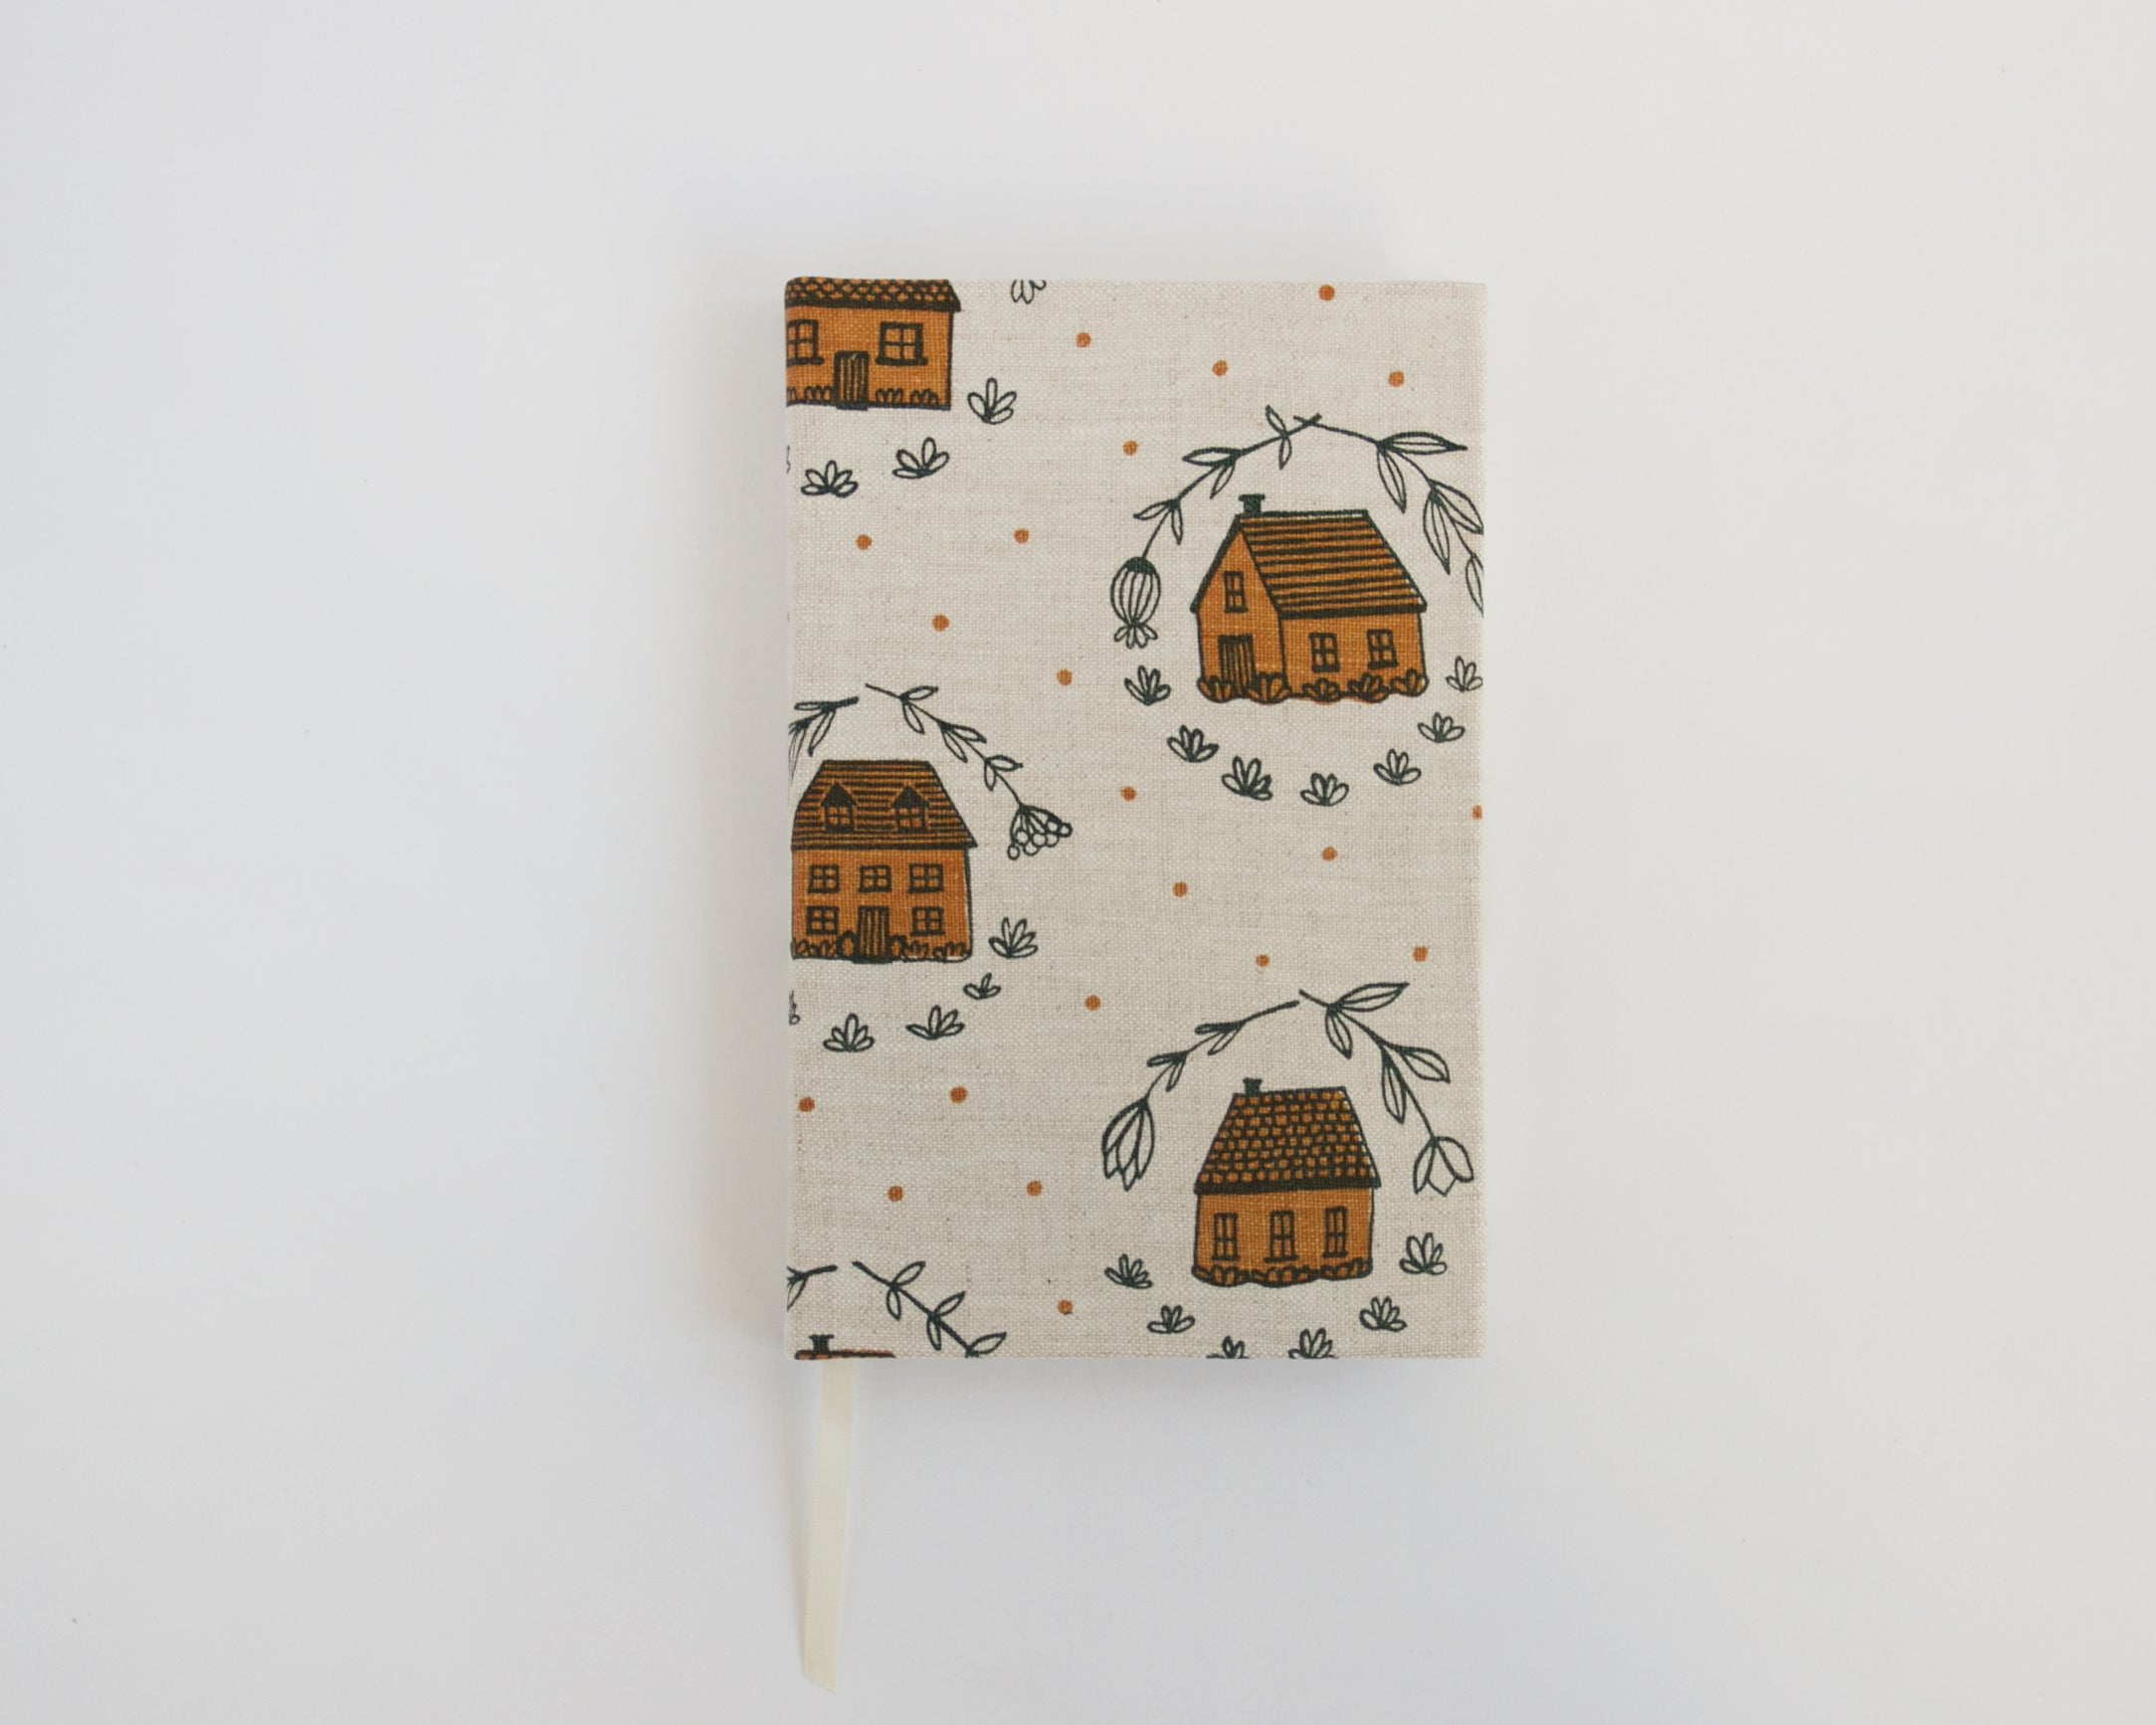 2021 Weekly Planner - Home - Coral